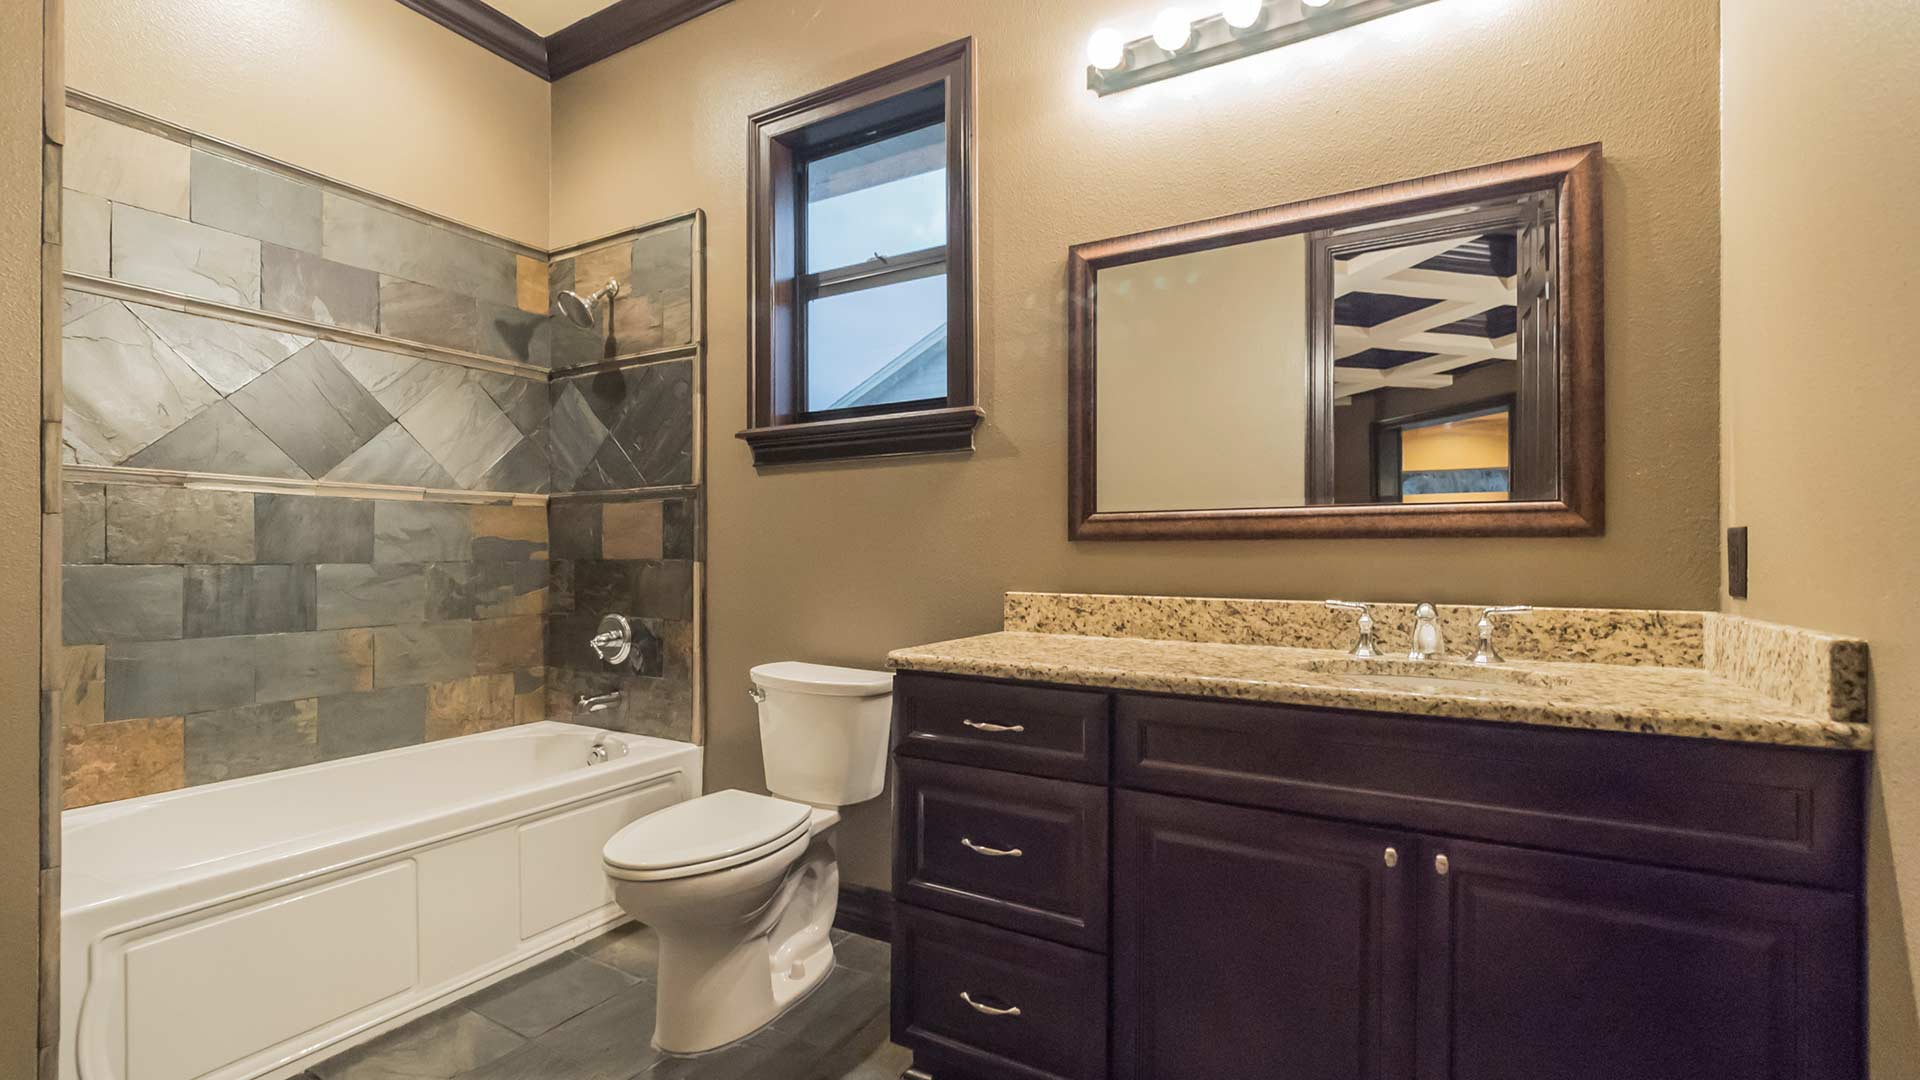 Example of a restored and remodeled bathroom by True Builders for a homeowner in Plant City.